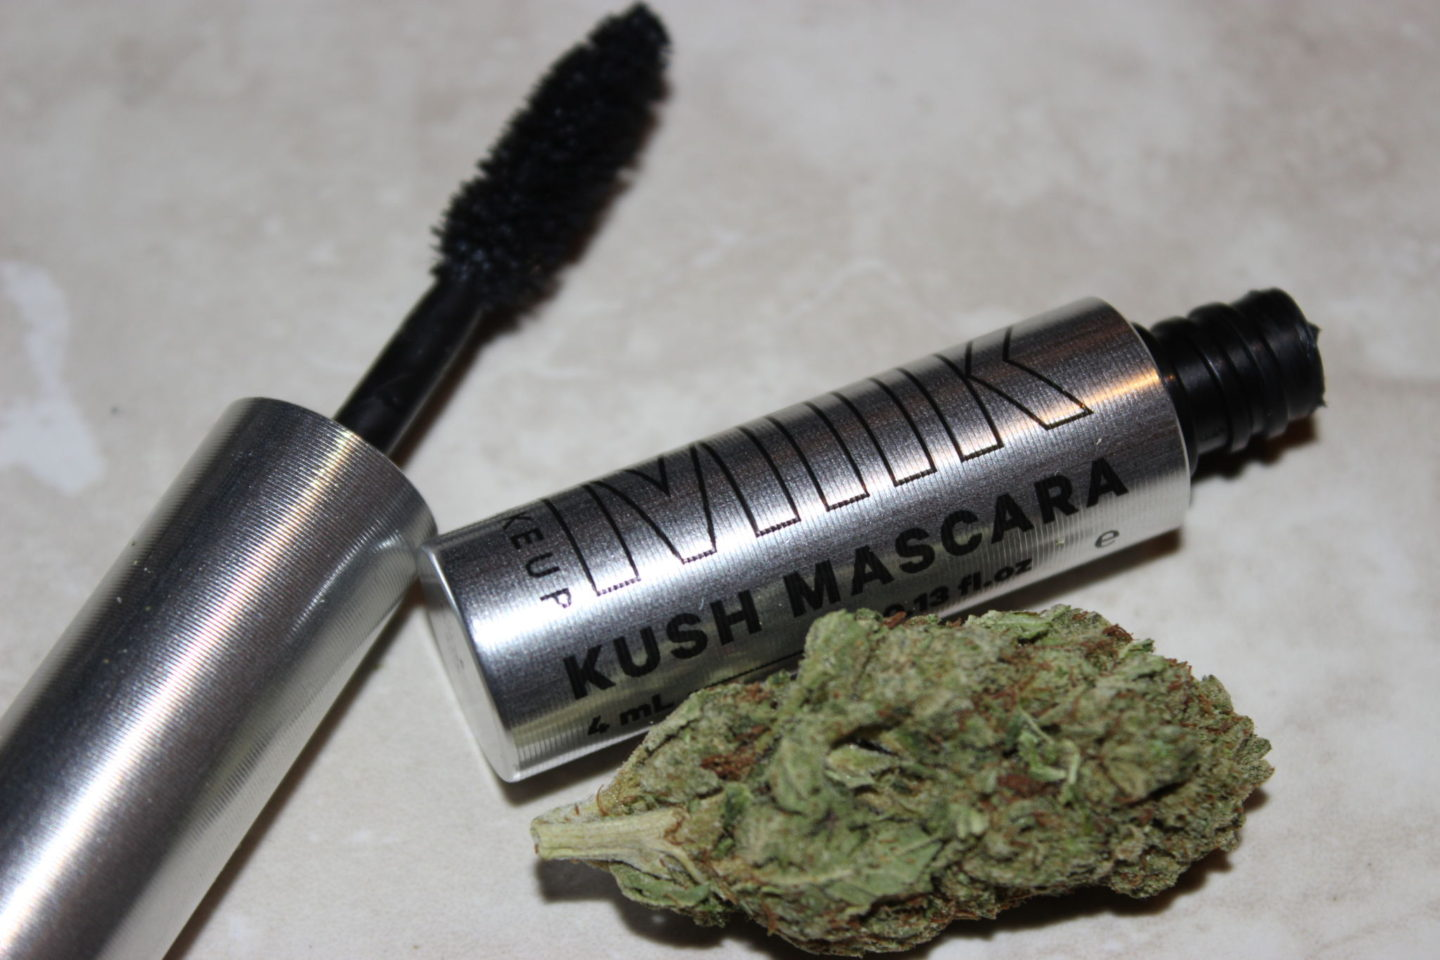 3e44afbc8c0 Review: This kush mascara gives you high-volume & length leaving your  lashes lit. I purchased the travel size for $12.00 to try it out and I love  it.